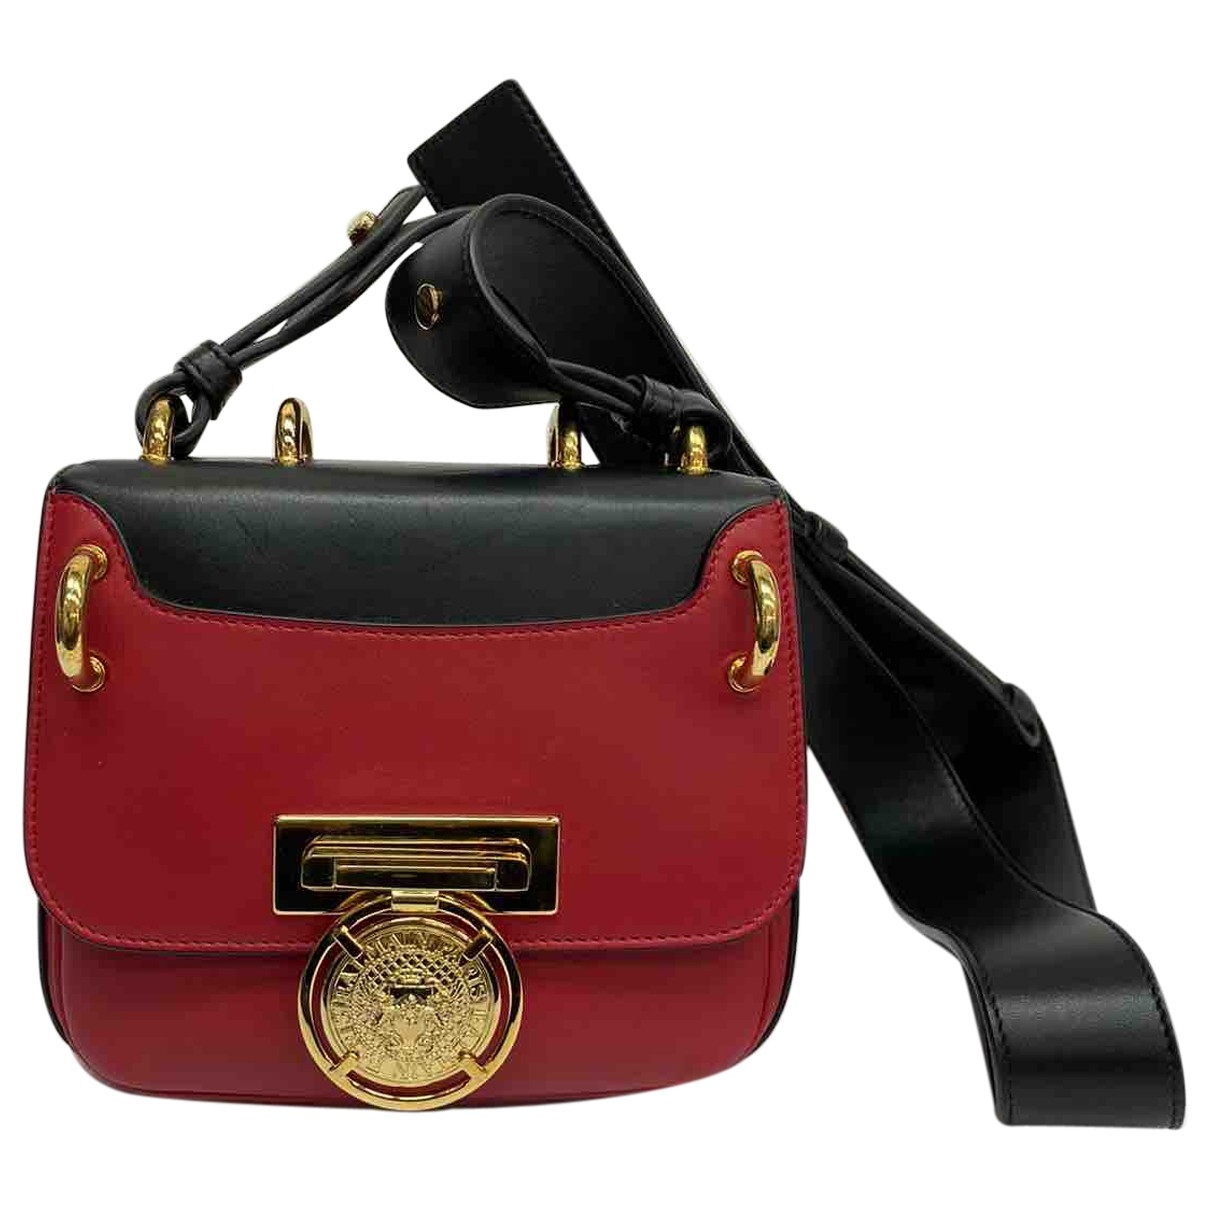 Balmain \N Red Leather handbag for Women \N